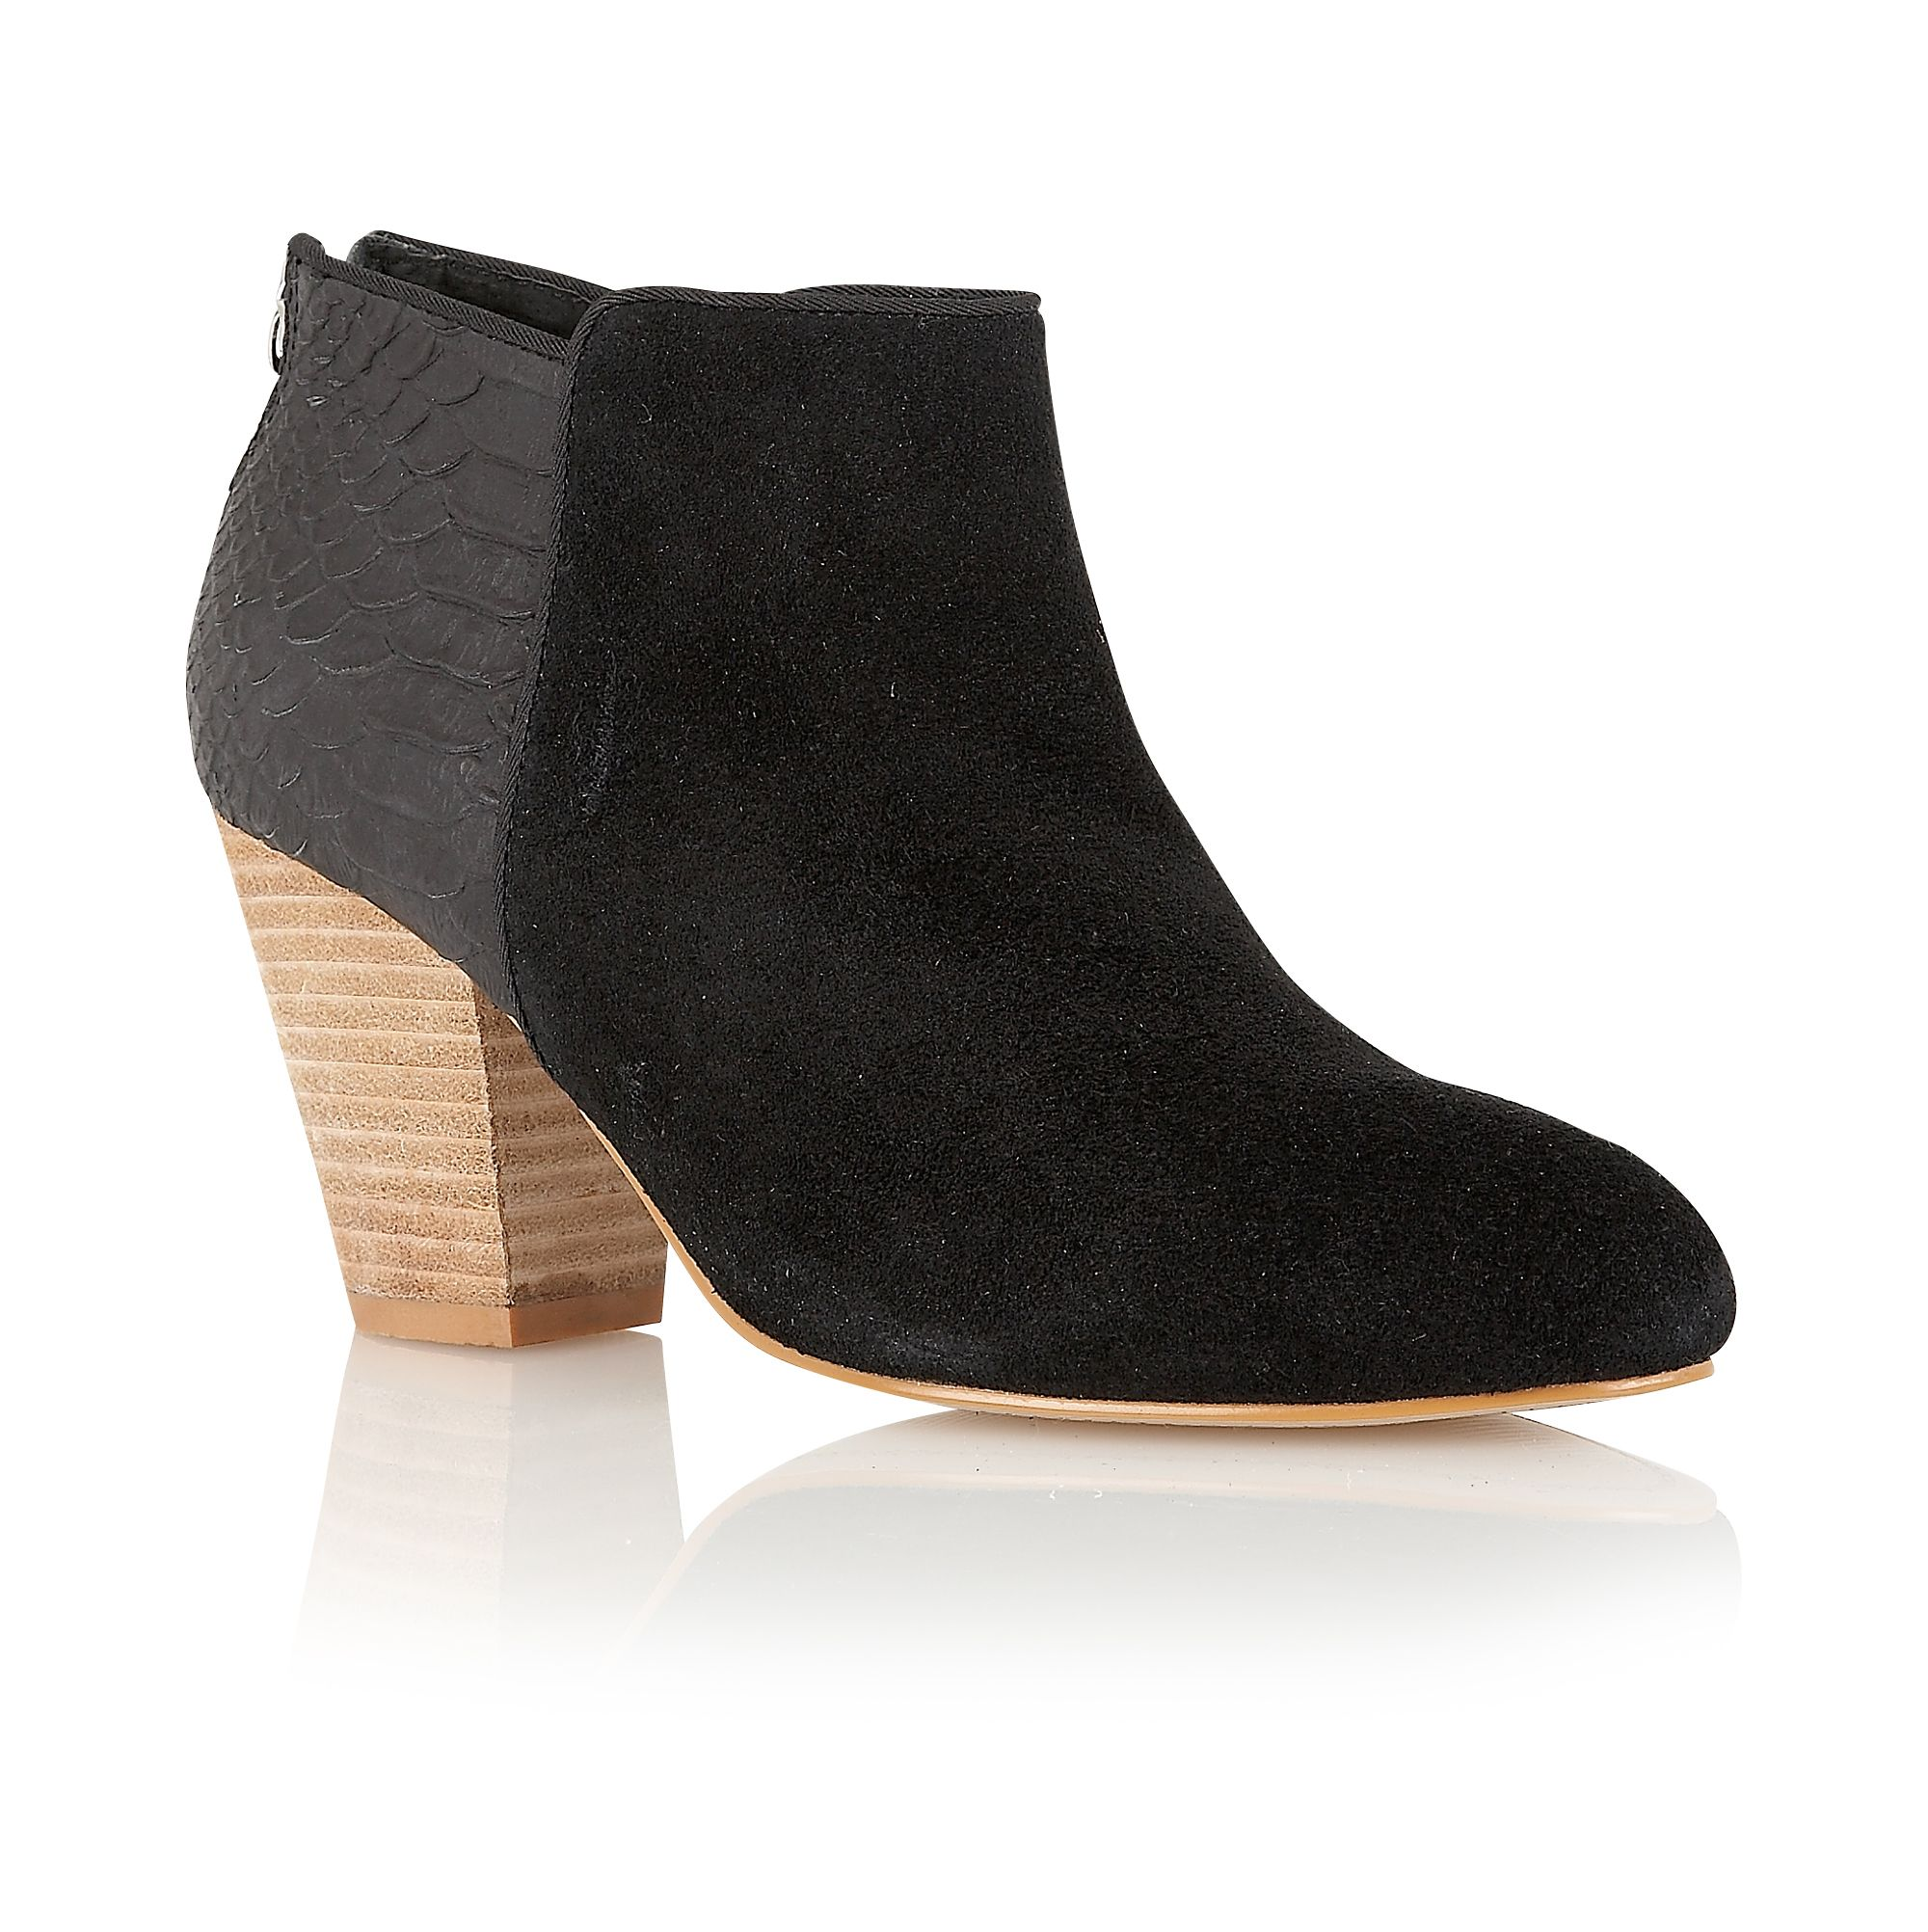 Windflower suede round toe slip on boots